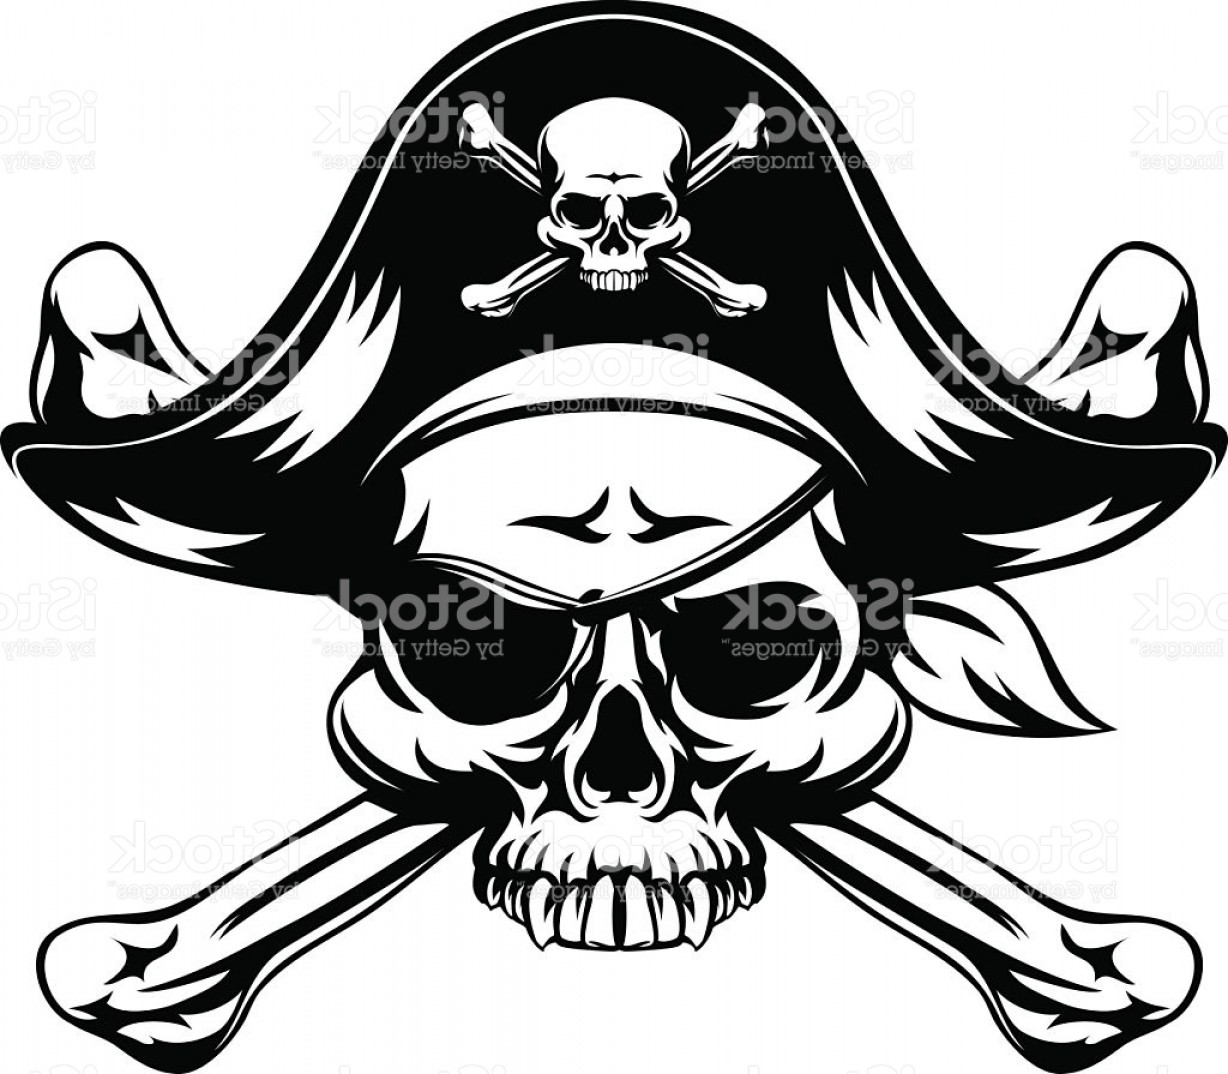 Skull ND Crossbones Vector: Pirate Skull And Crossed Bones Gm